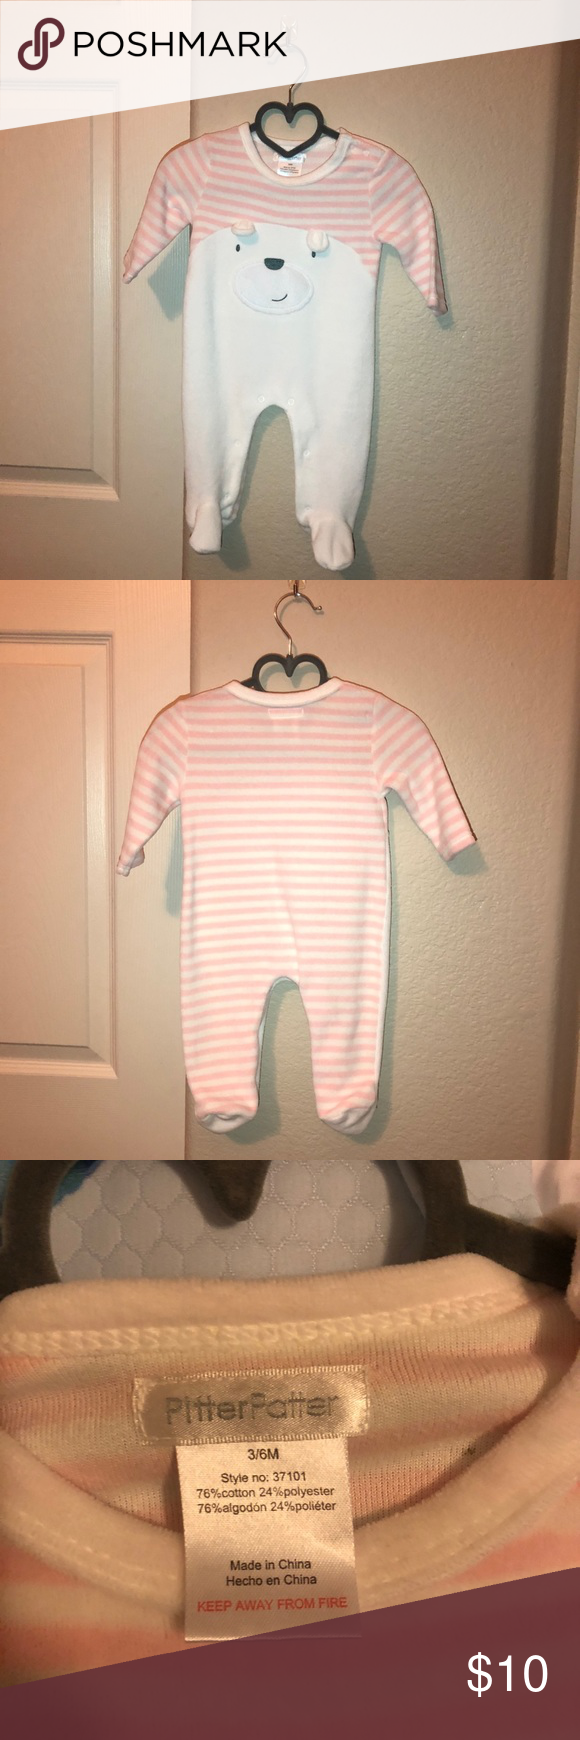 Baby Pajama Onsie - NWOT - size 3-6 months - button ...